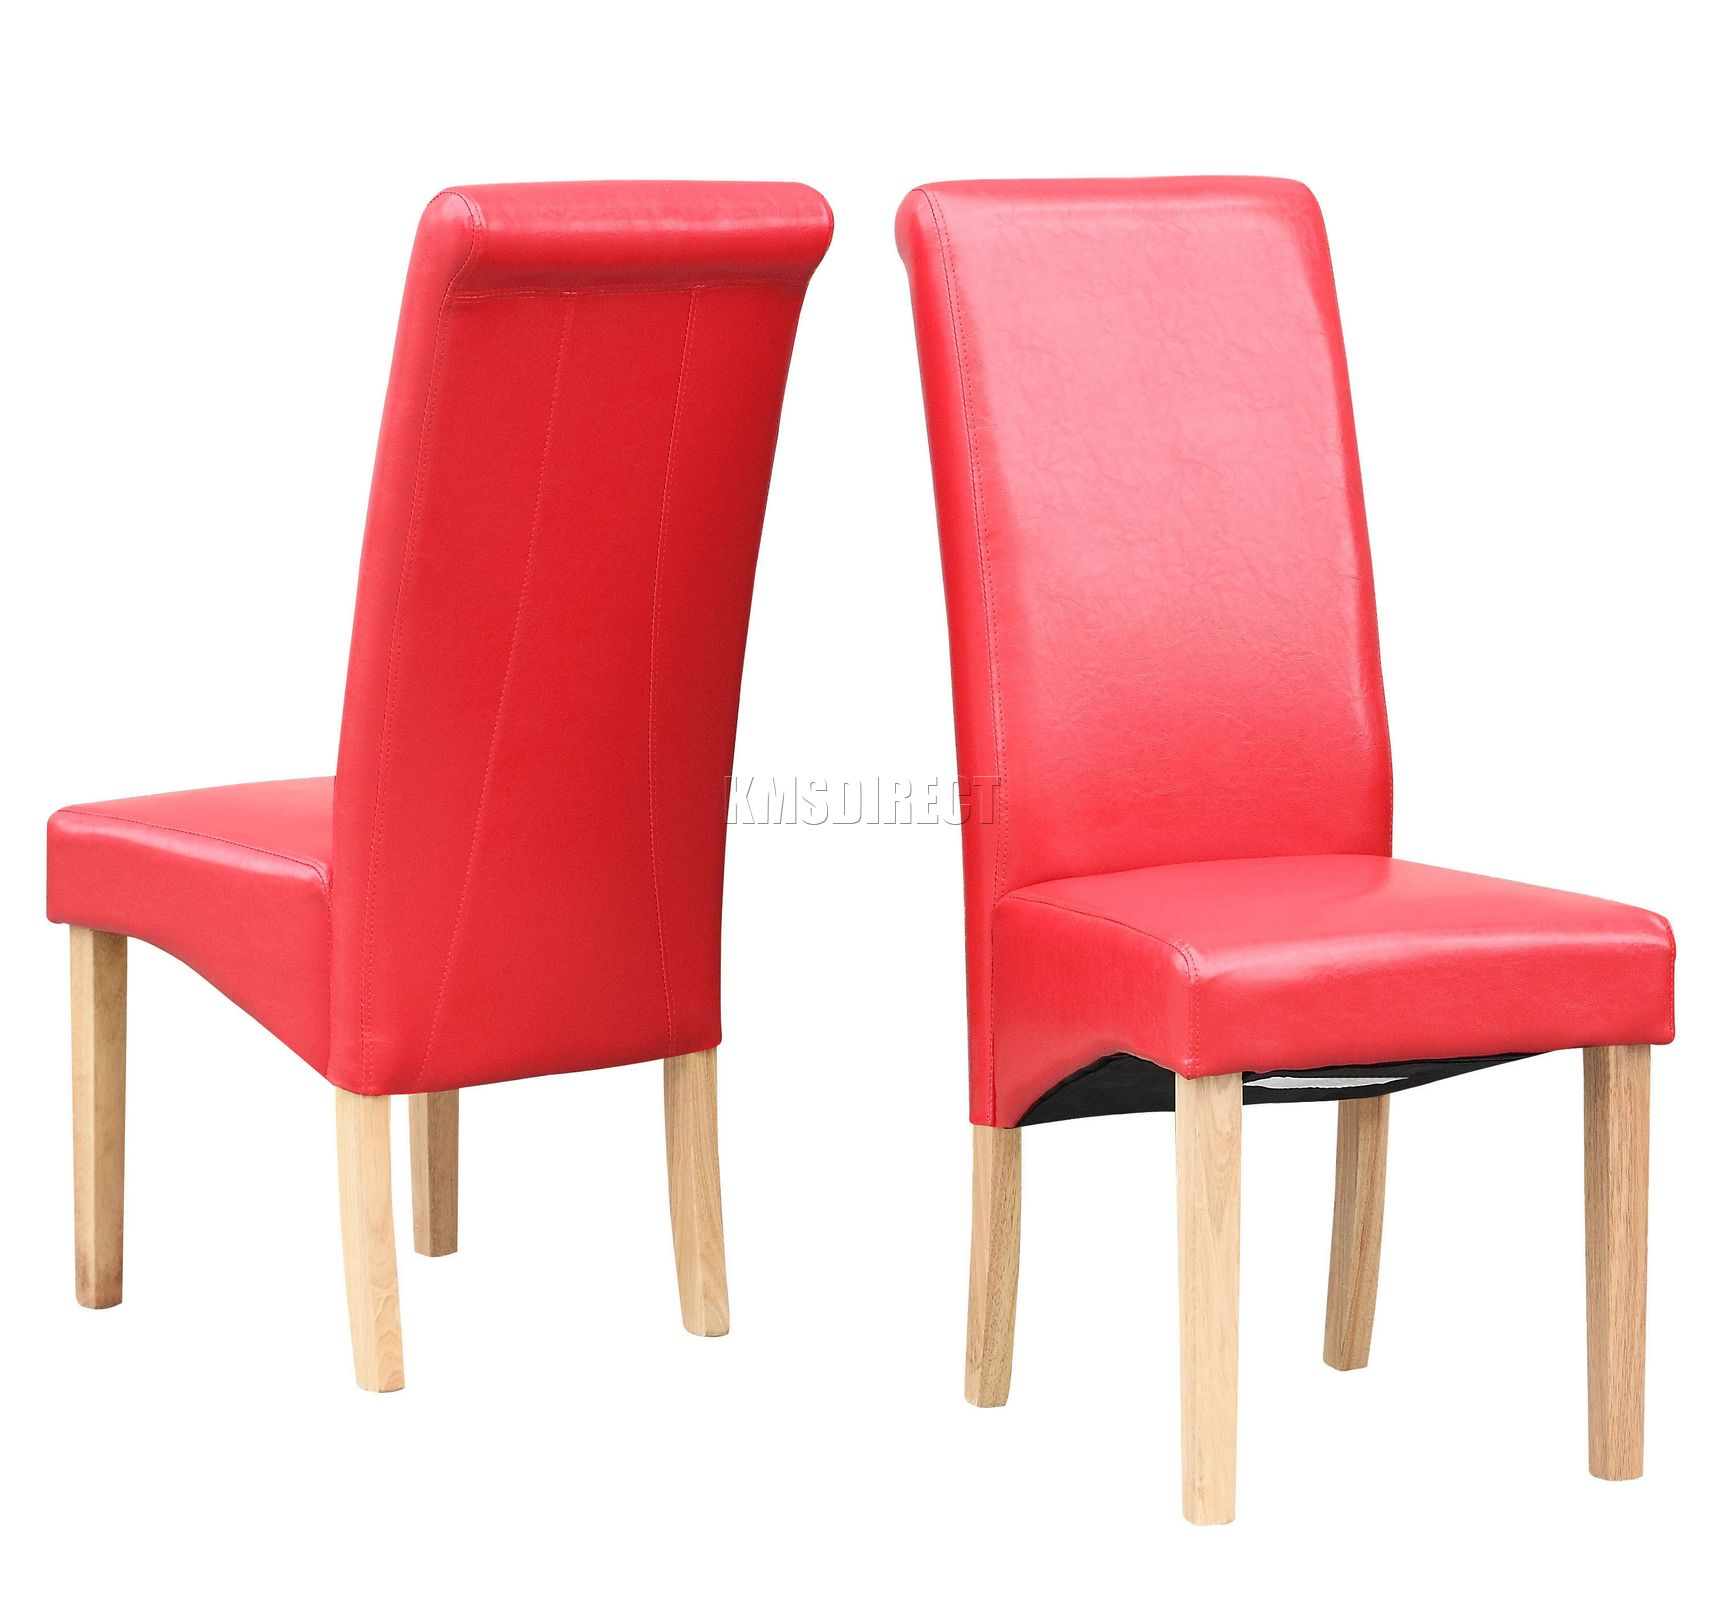 New Red Faux Leather Dining Chairs Roll Top Scroll High